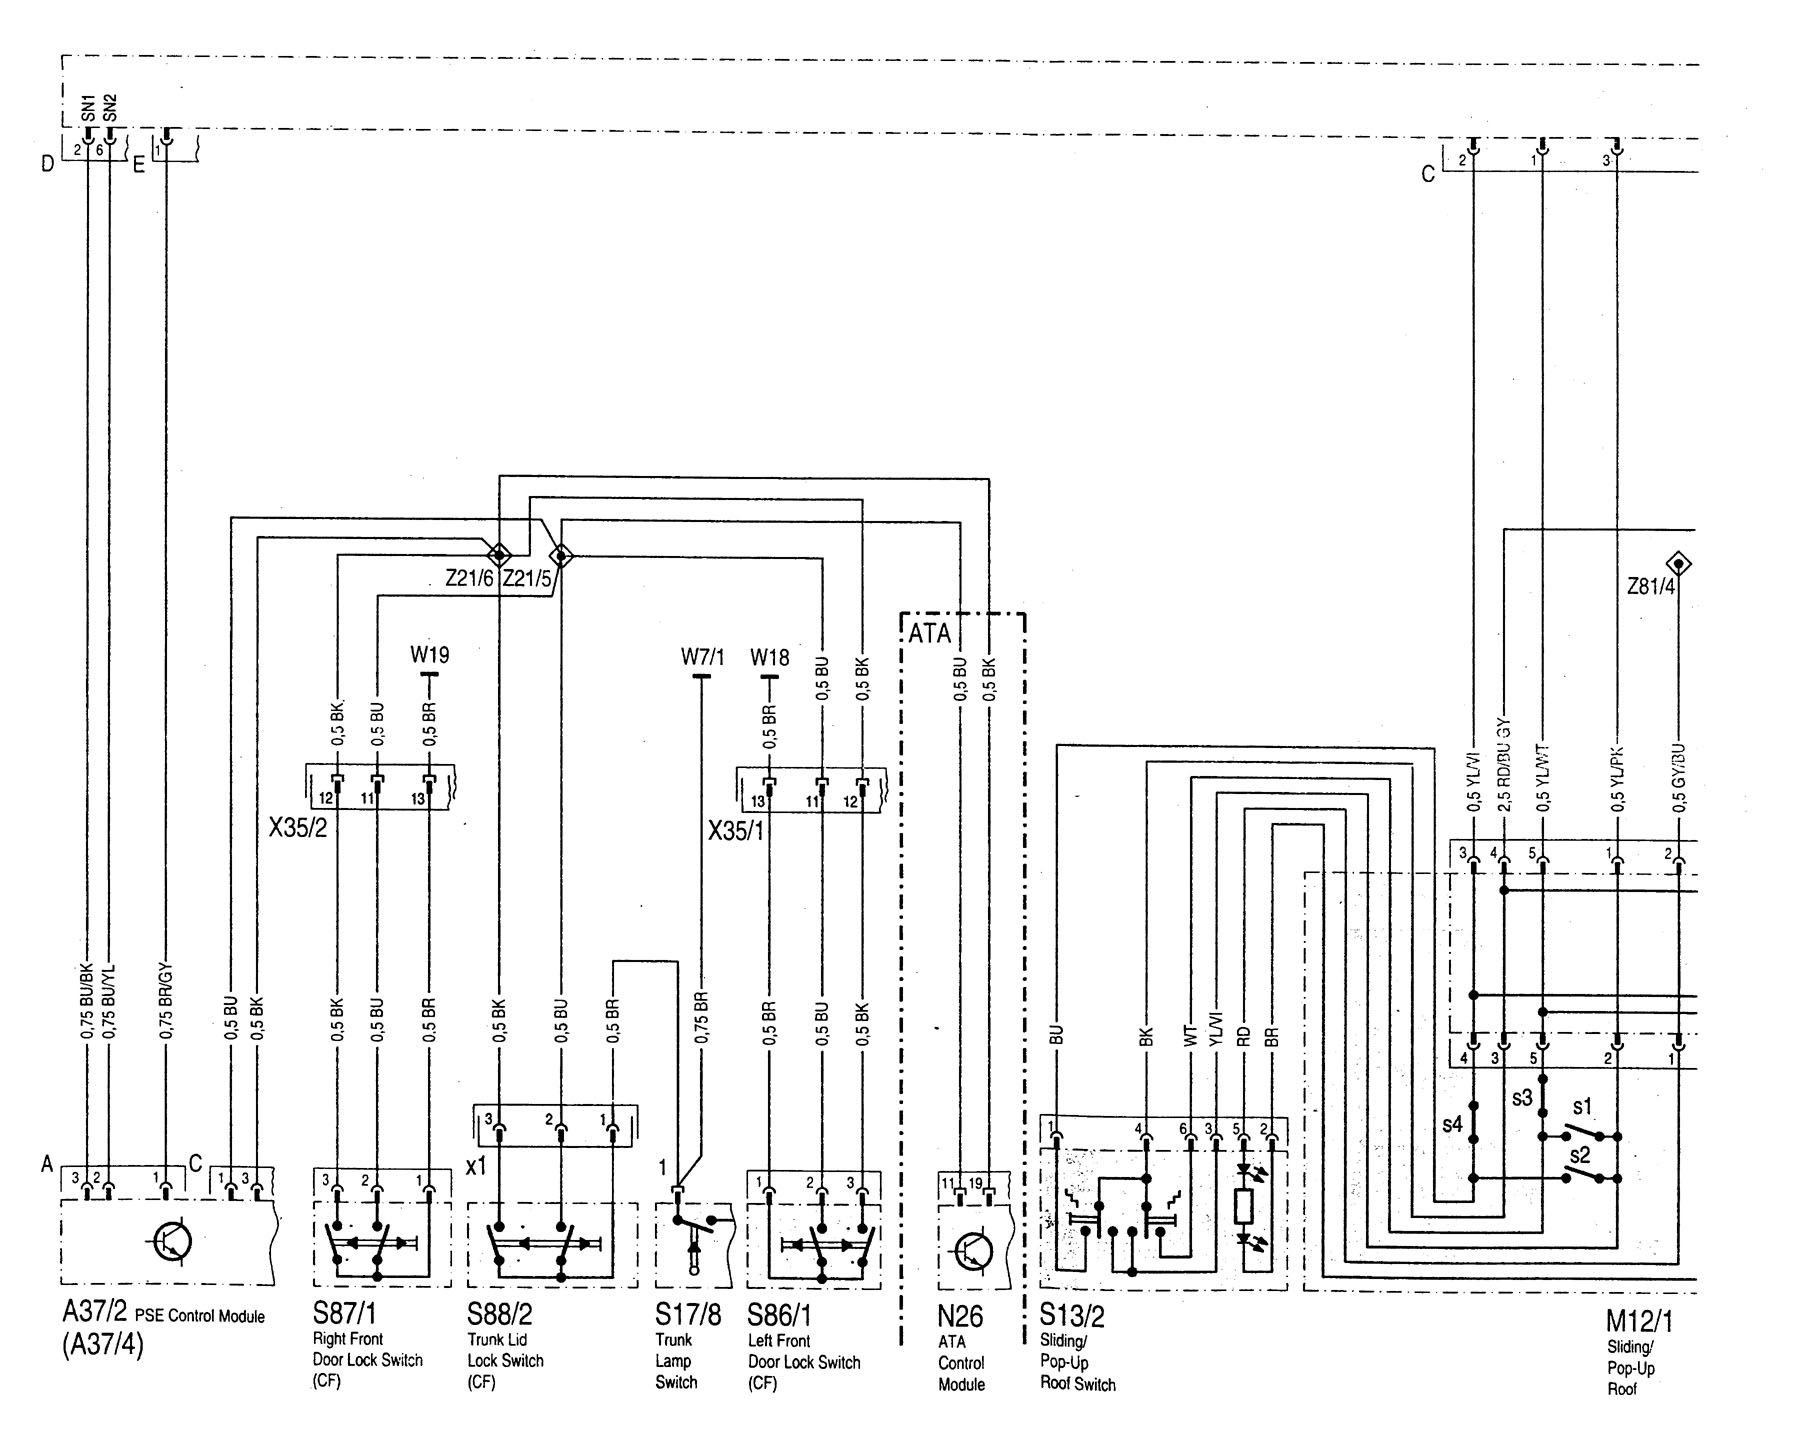 Mercedes Benz C280 1997 wiring diagrams power